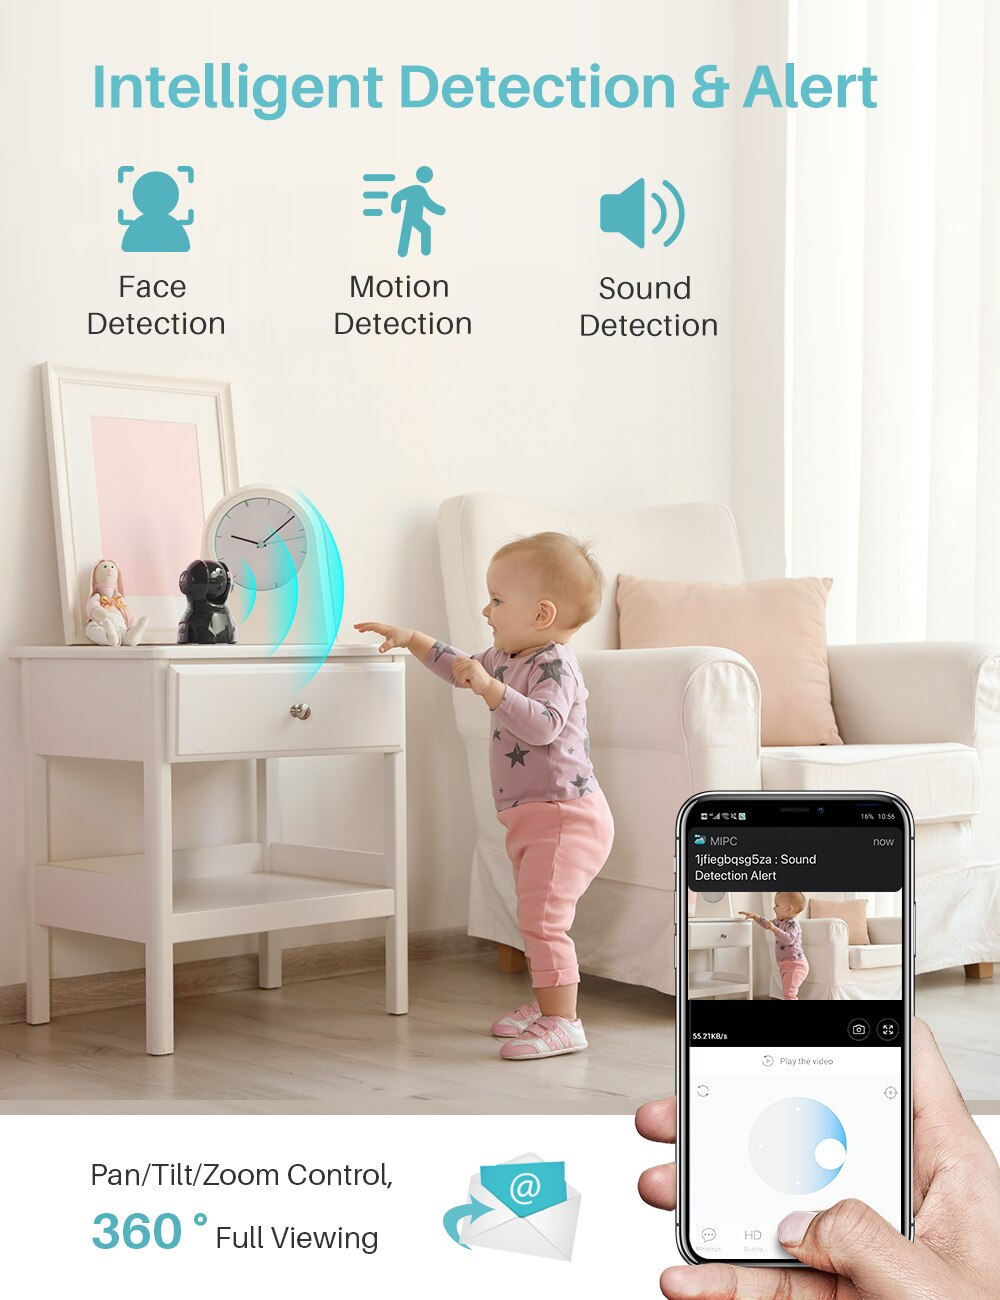 HeimVision HM302 3MP 2K Wireless Security IP Camera PTZ Indoor WiFi Pet IP Camera Support Motion/Face Dection Works with Alexa Accessories Cats & Dogs